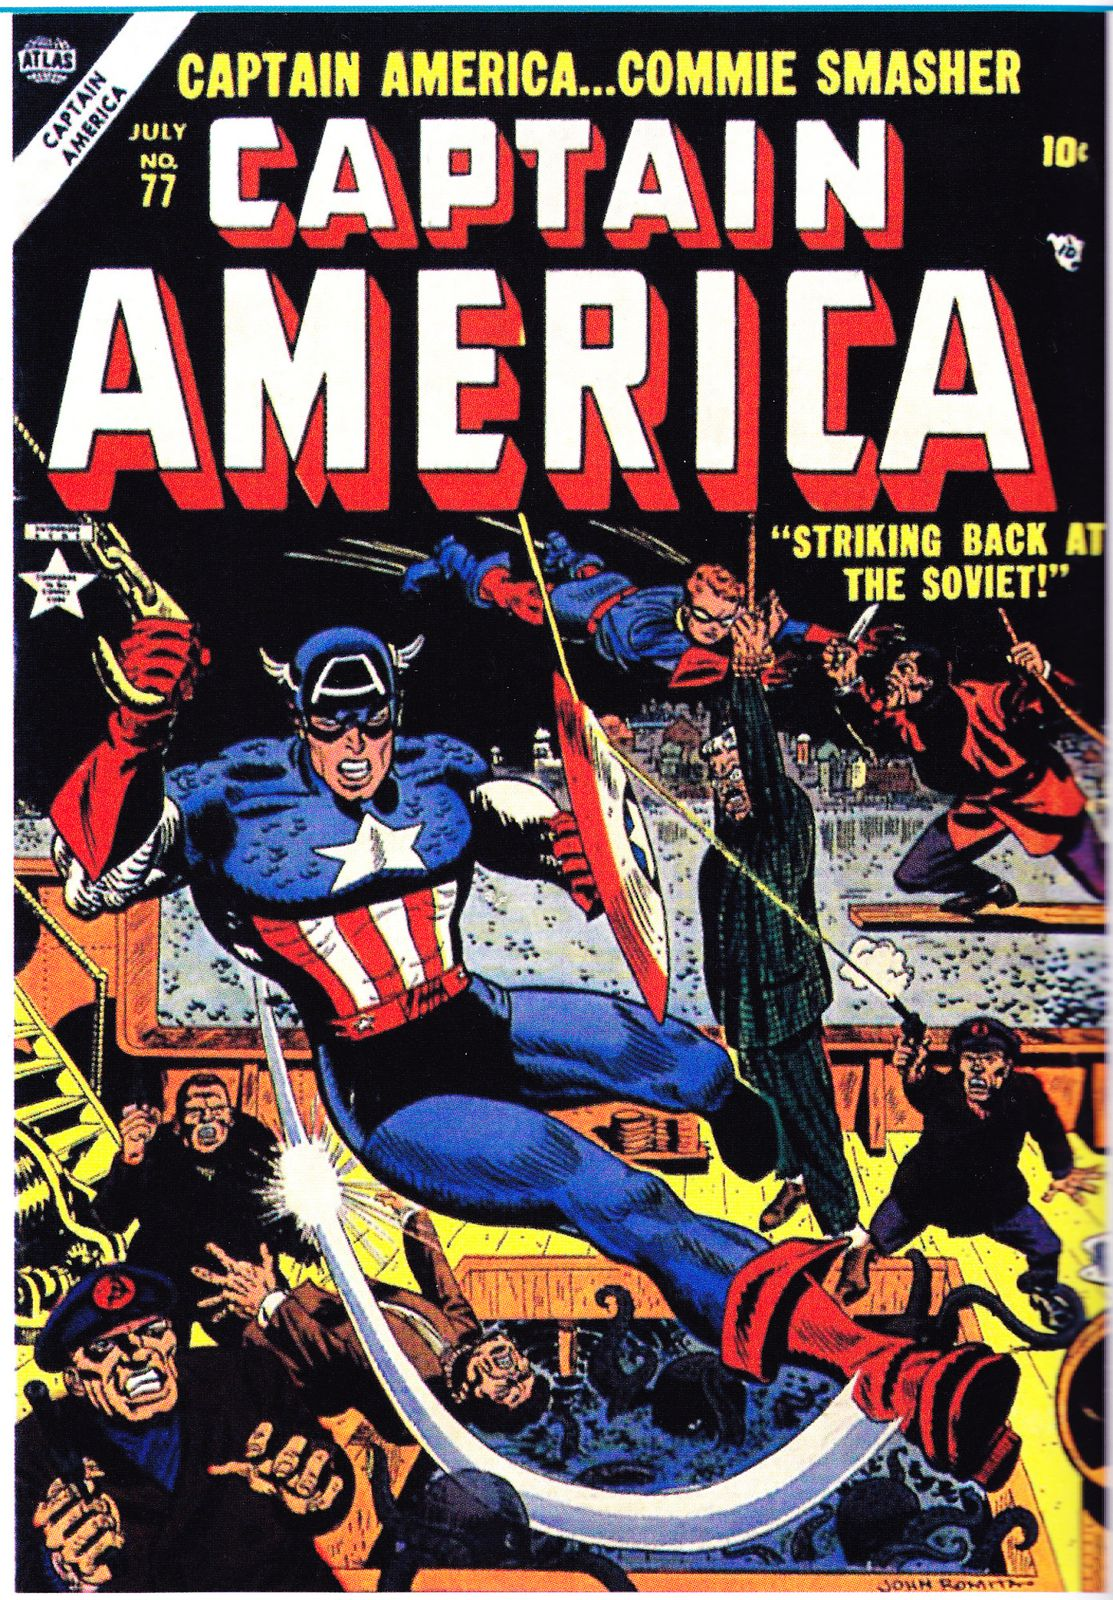 Captain America contre les communistes 1